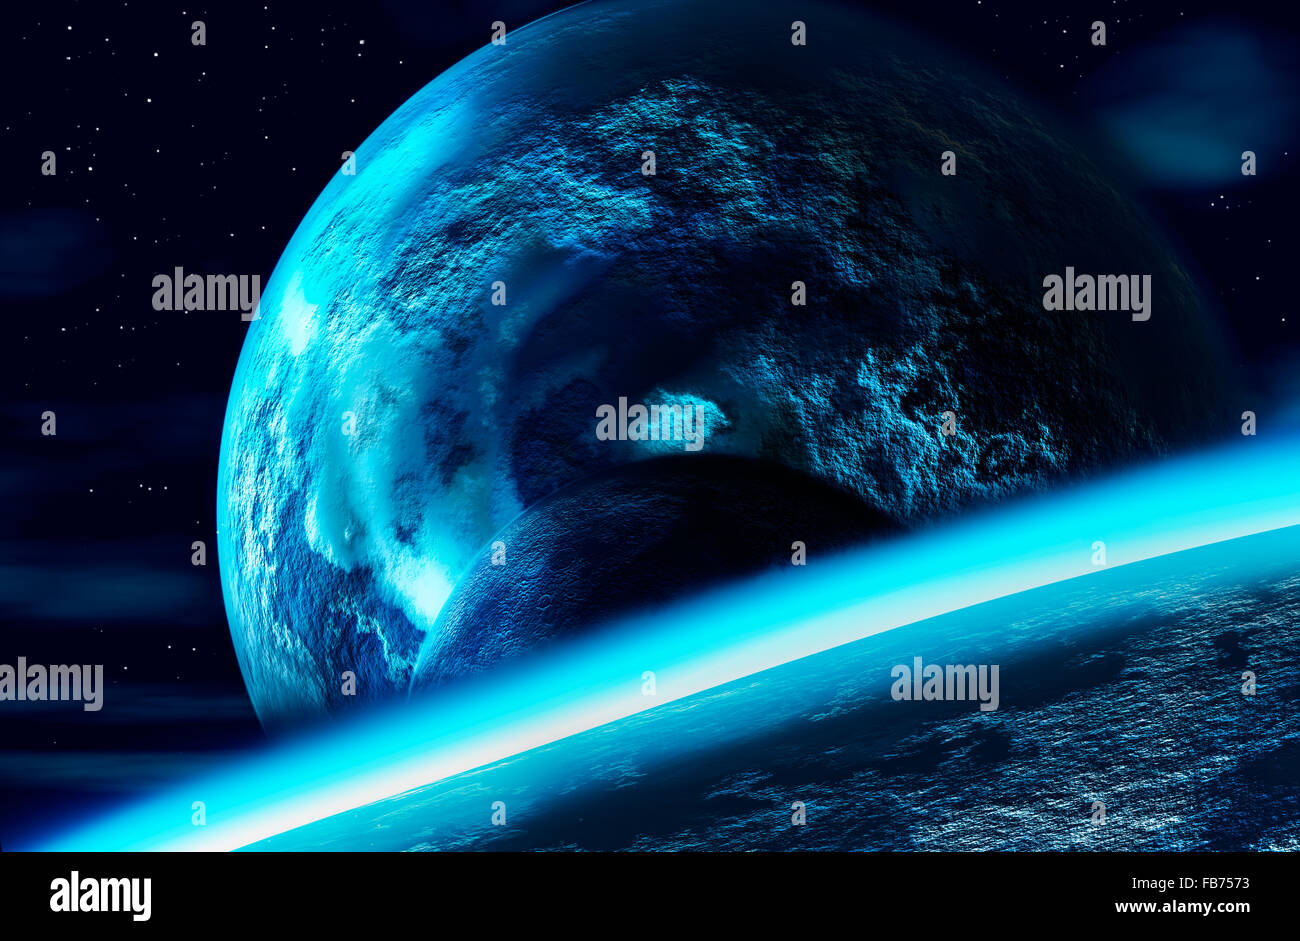 planets - Stock Image